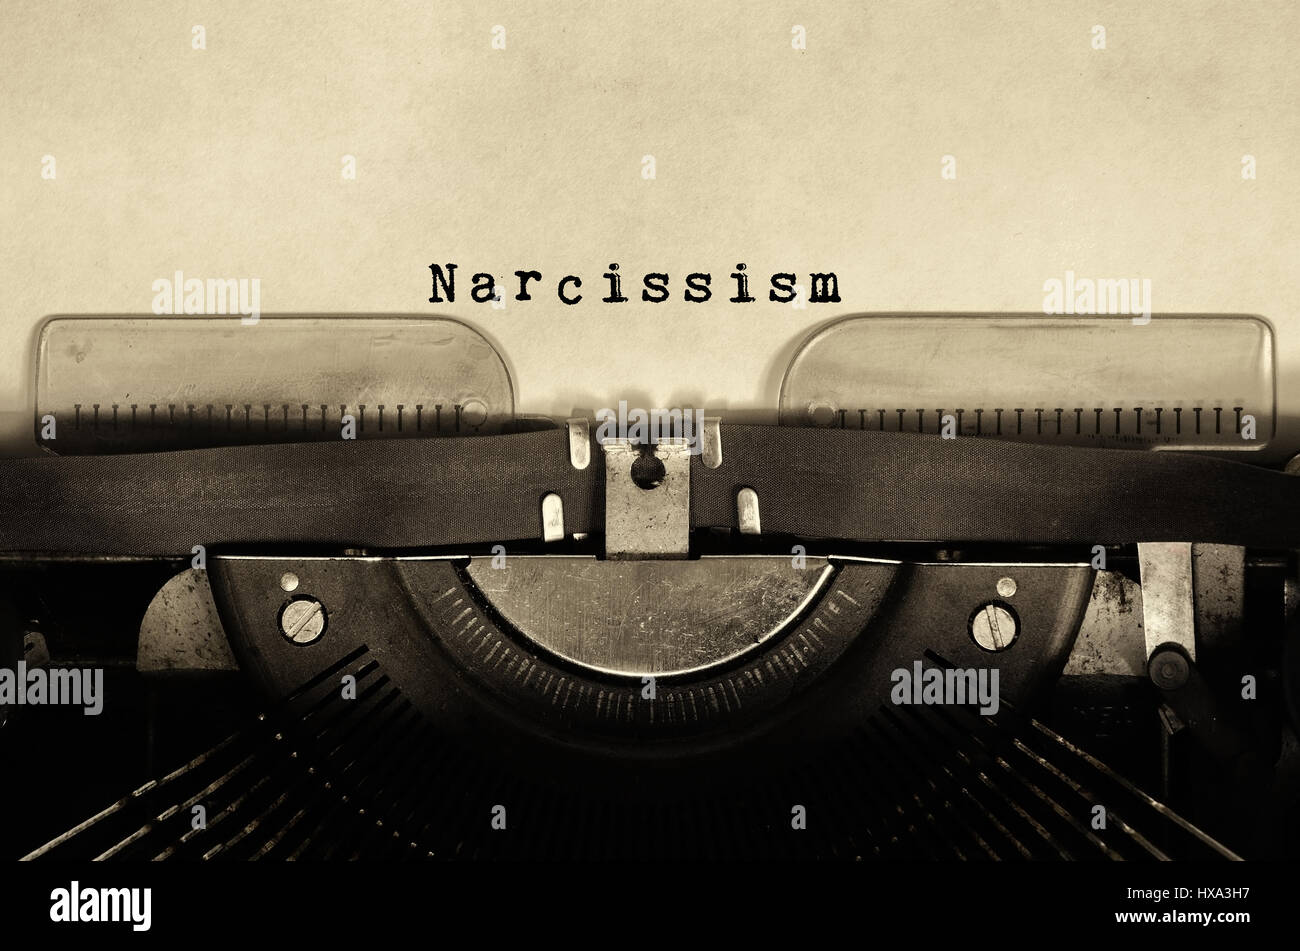 Narcissism word typed on vintage typewriter - Stock Image